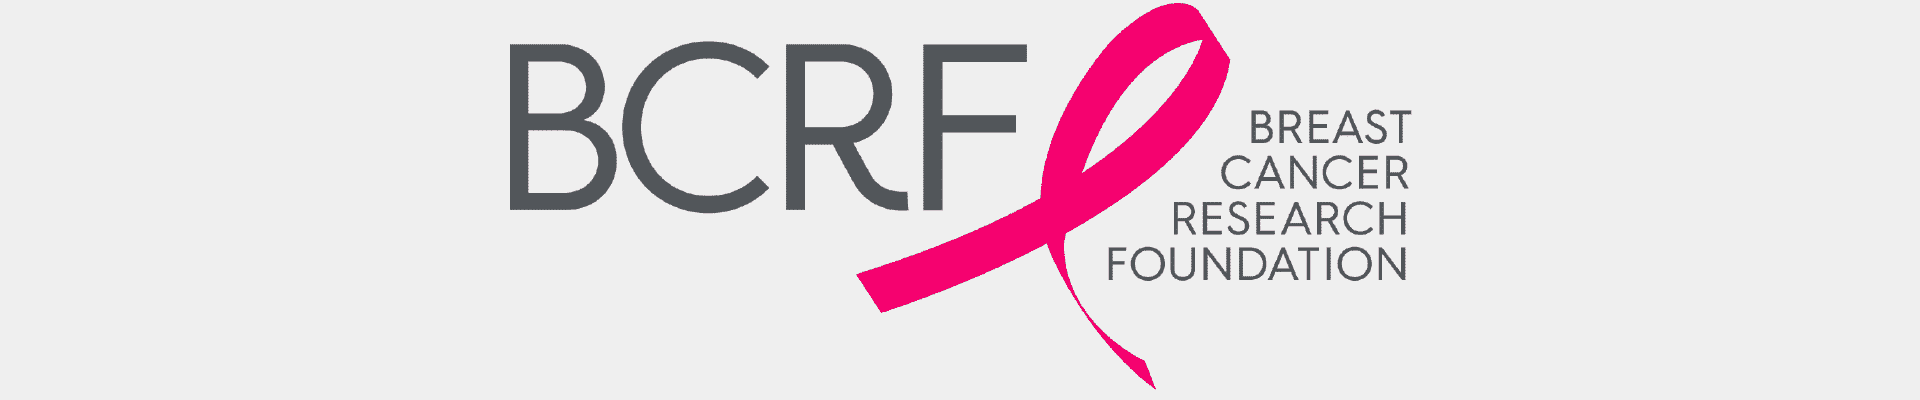 nonprofit charity logo of breast cancer research foundation on a tan background